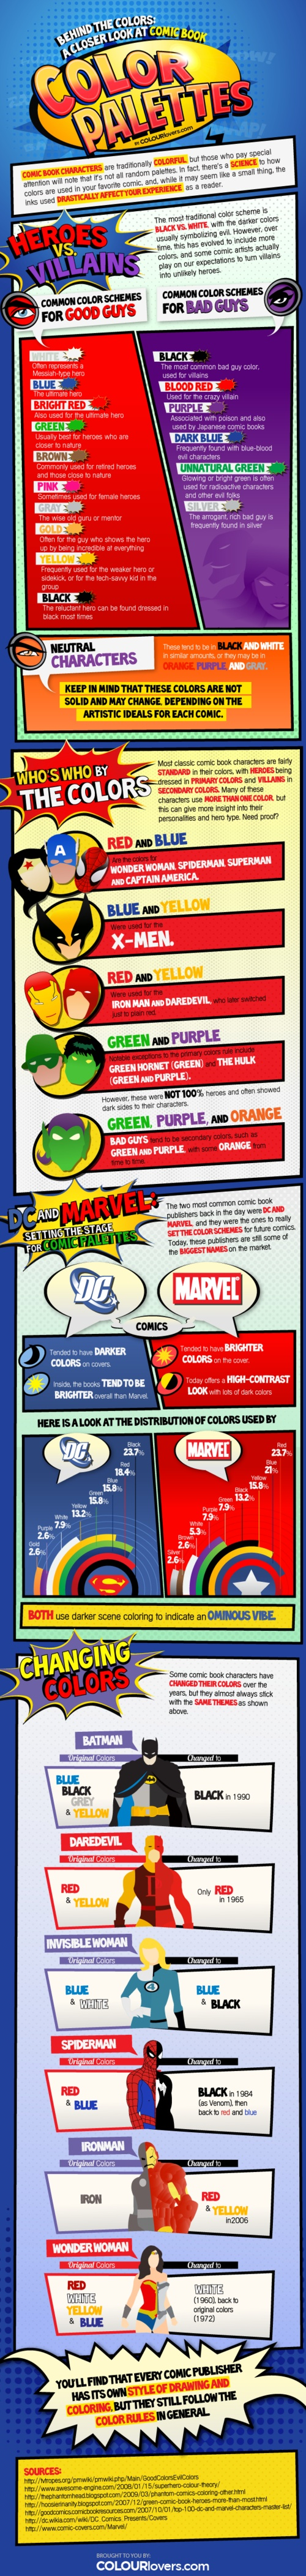 The Color Psychology of Superheroes [Infographic]